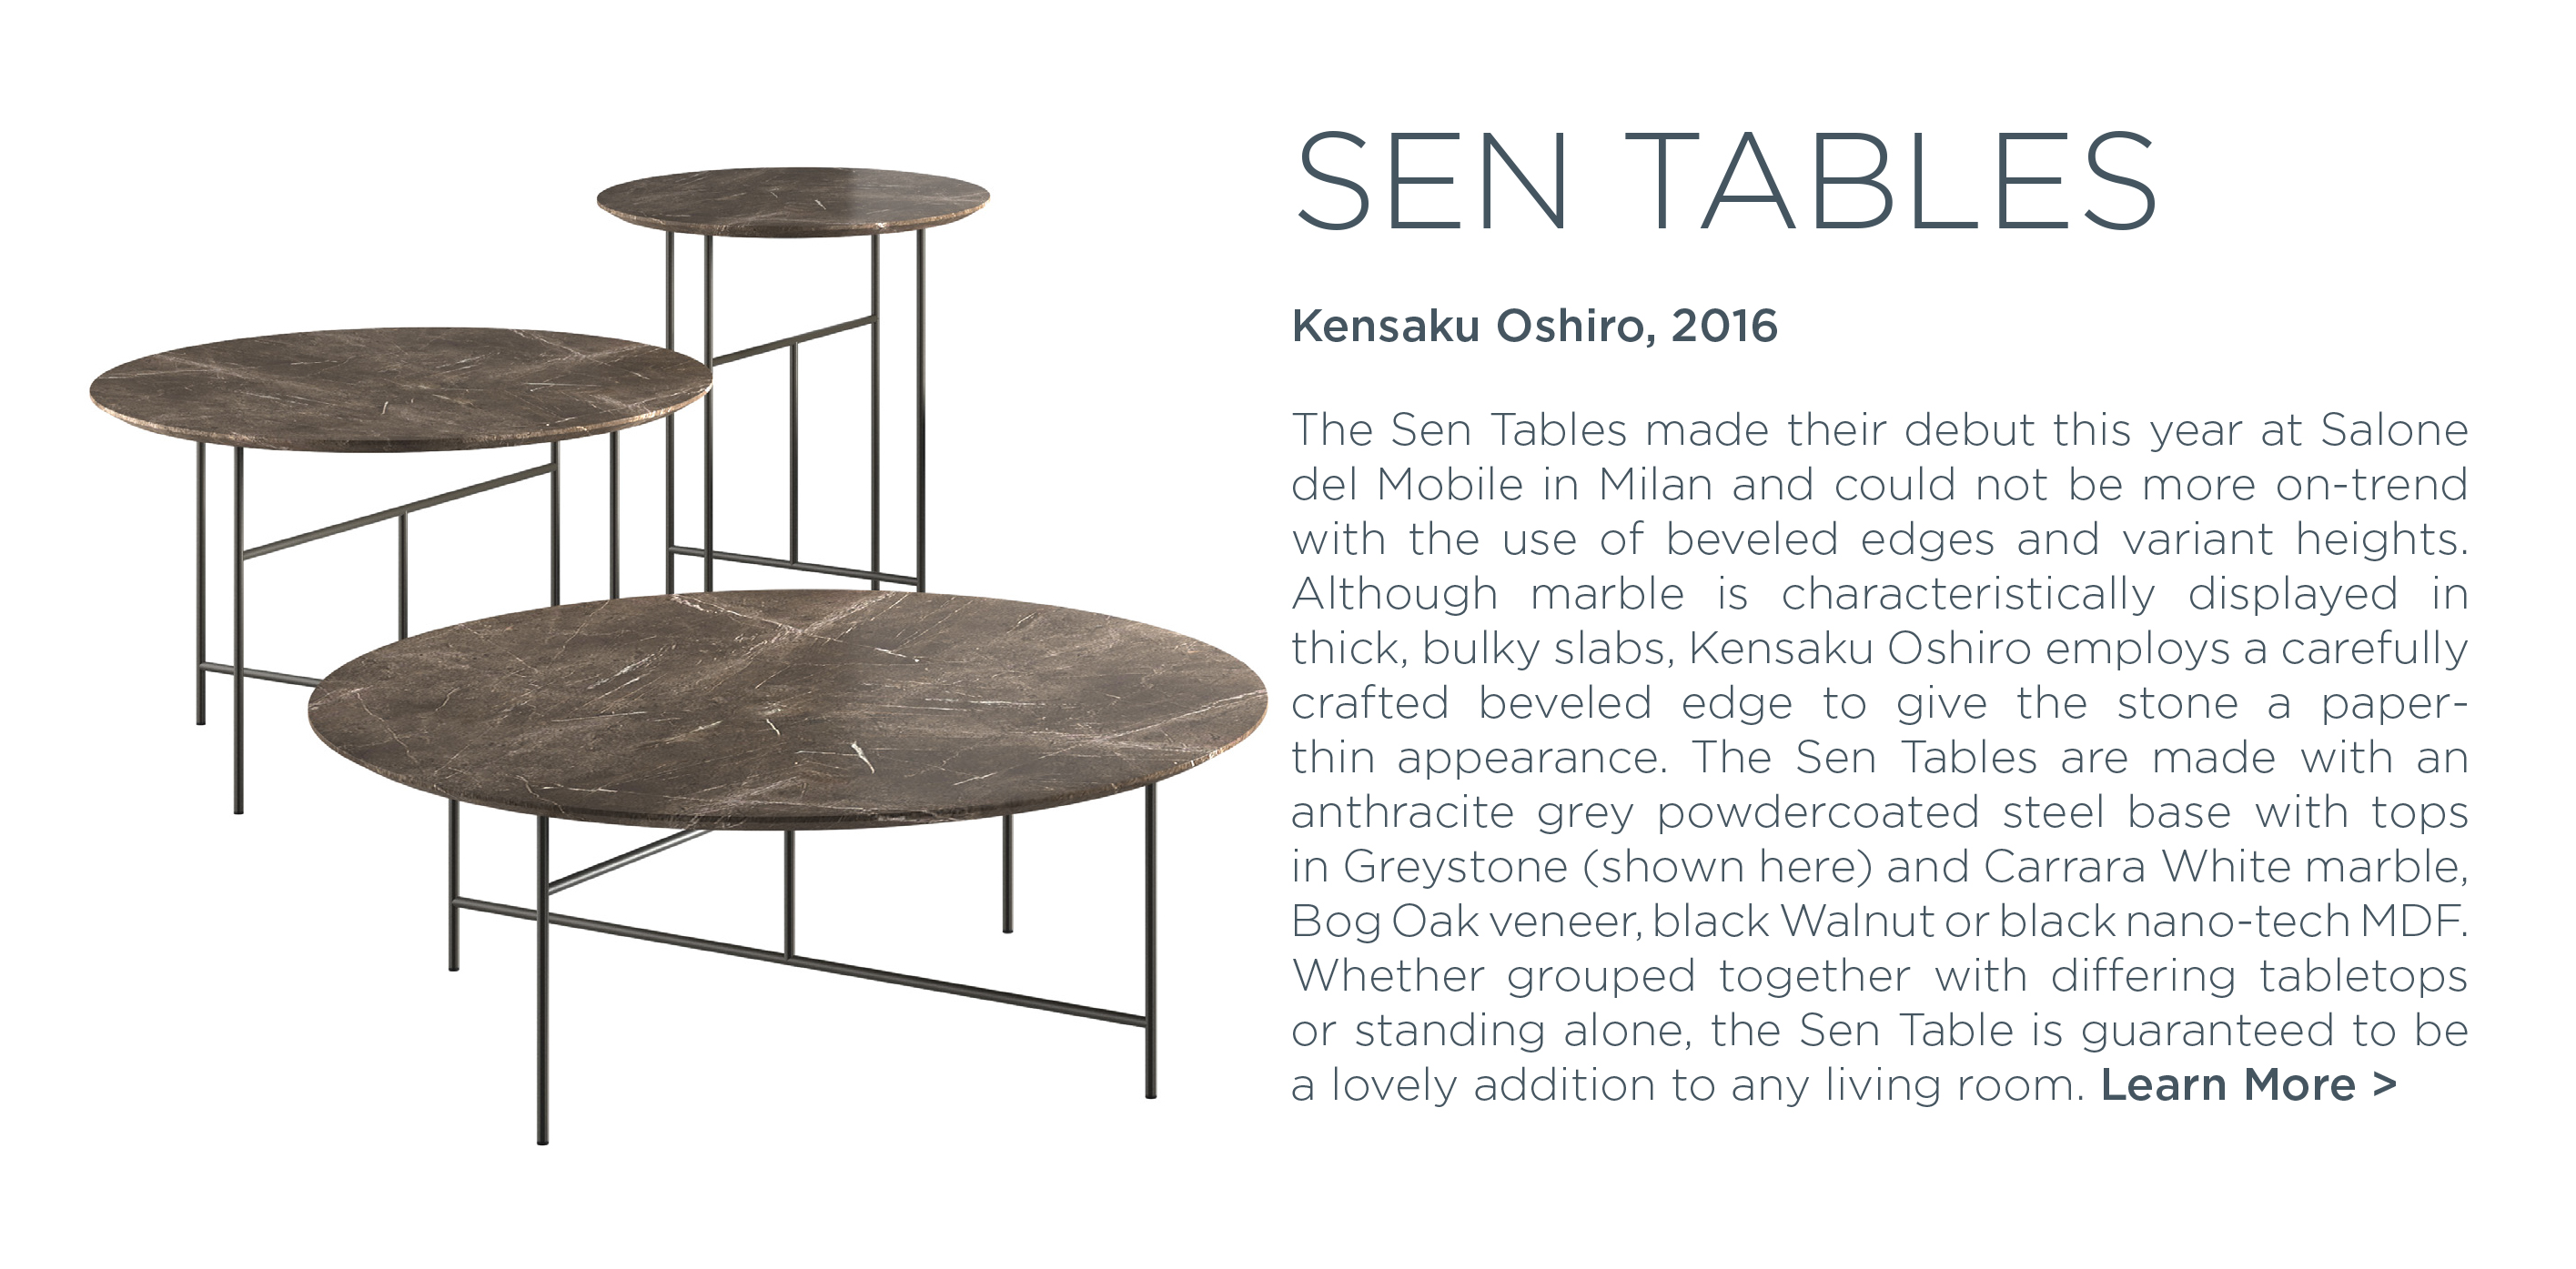 Sen Tables, kensaku oshiro, depadova, de padova, marble occasional tables,  stone coffee tables, luxury designer furniture, japanese design, italian luxury brands, suite ny, suite new york